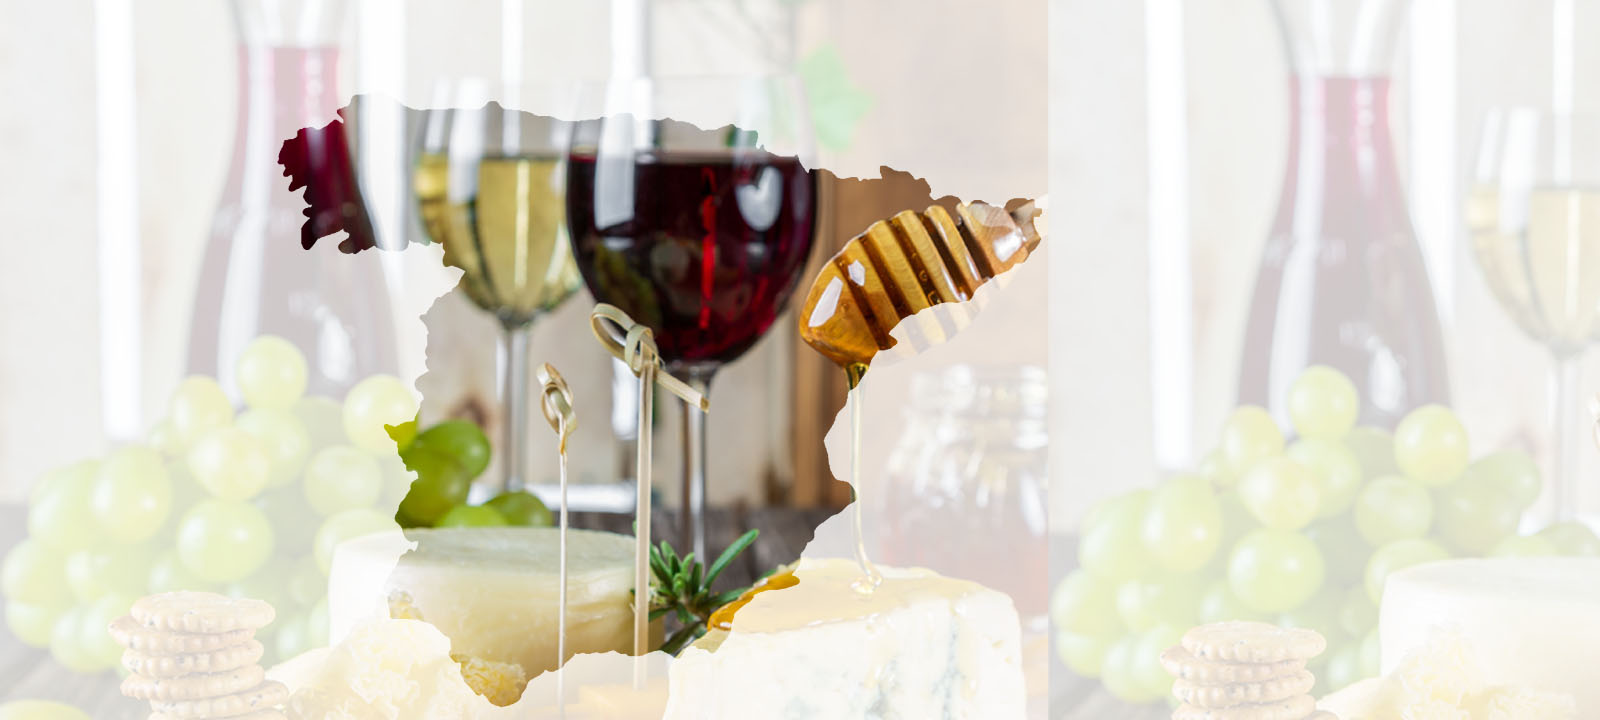 Spain Tour Scholarship Fundraiser: Wine and Cheese Reception